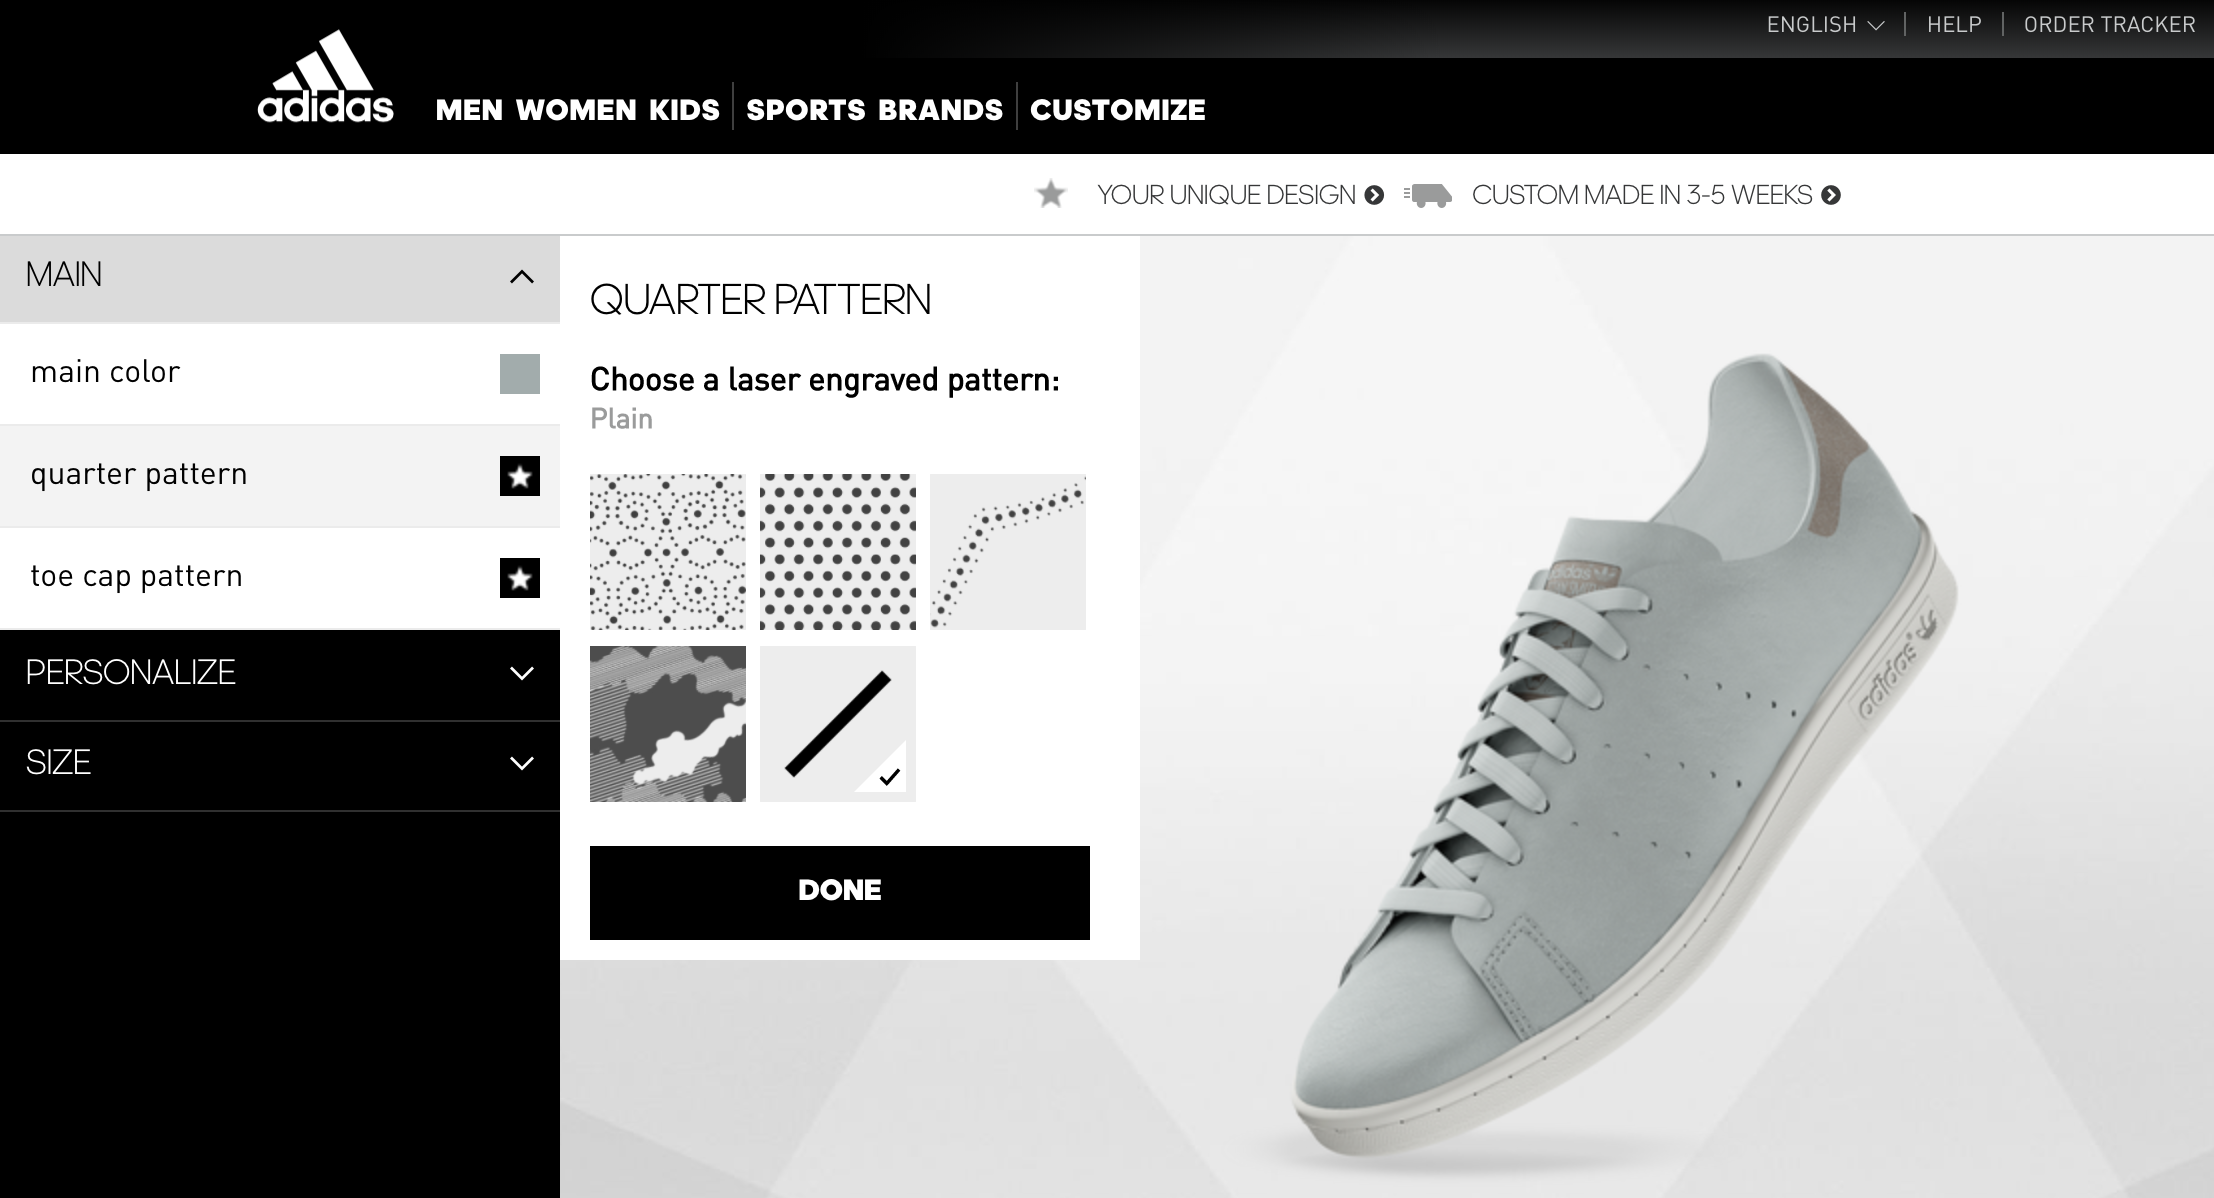 cf75e787a adidas stan smith deconstructed.png. Want to customize adidas shoes ...